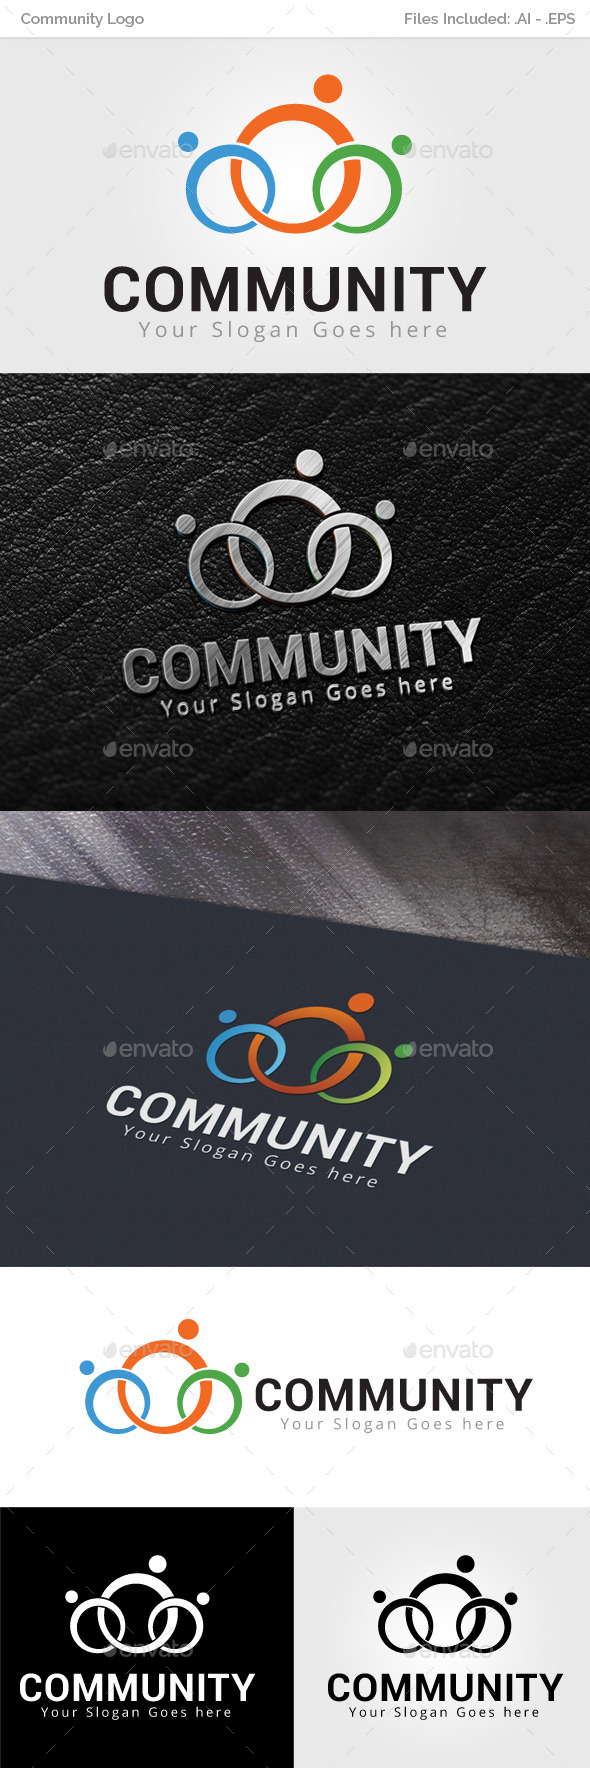 Community Logo Template - Objects Logo Templates